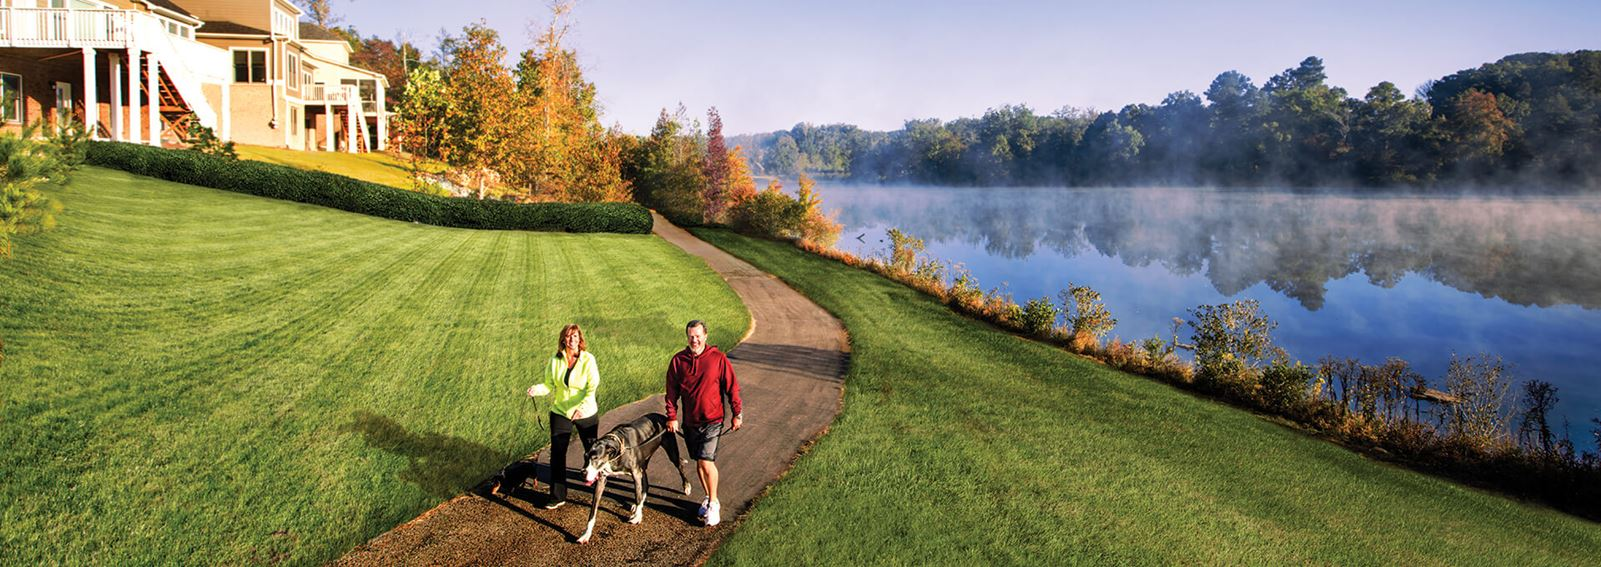 Amenities-Trails-Couple-Walking-Dog